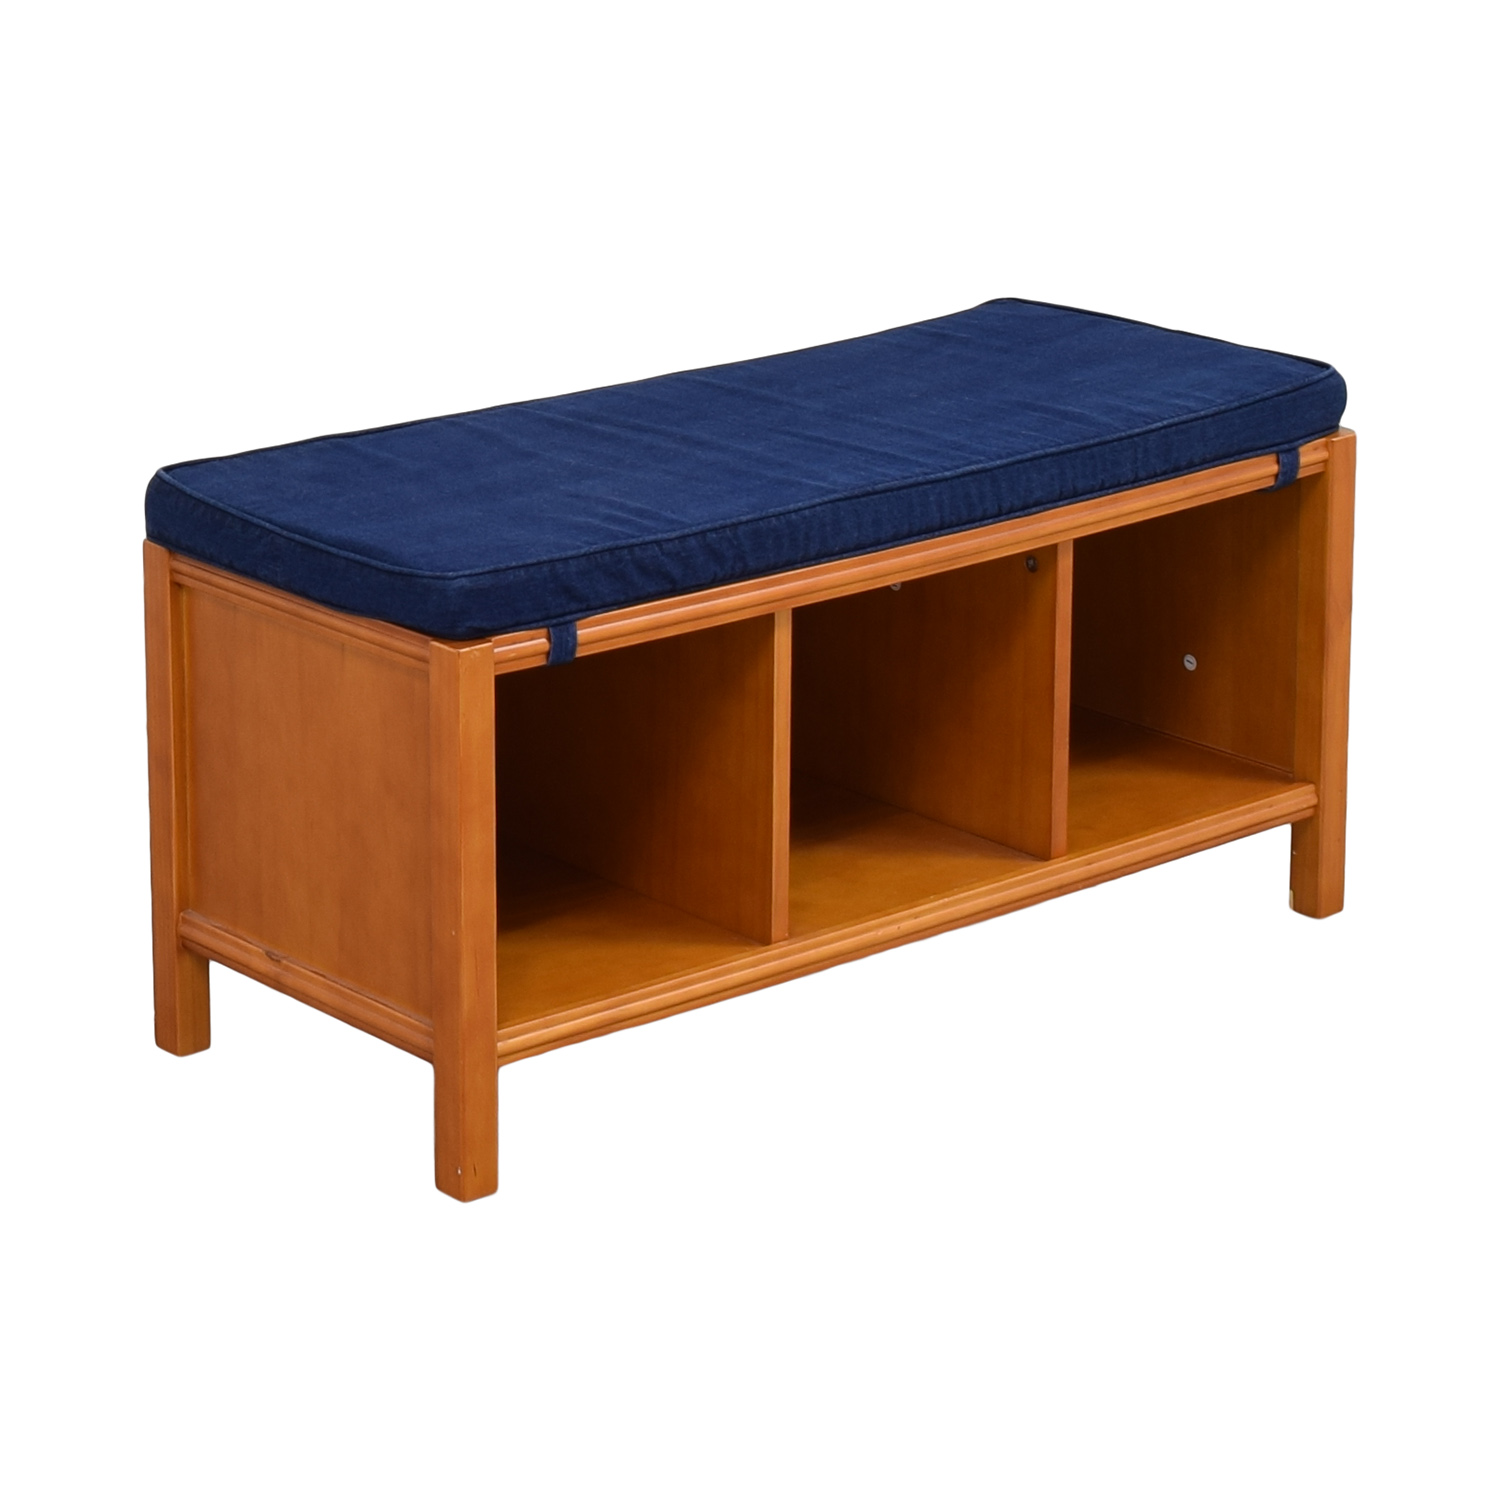 Land of Nod The Land of Nod Three Cube Bench with Cushion dimensions